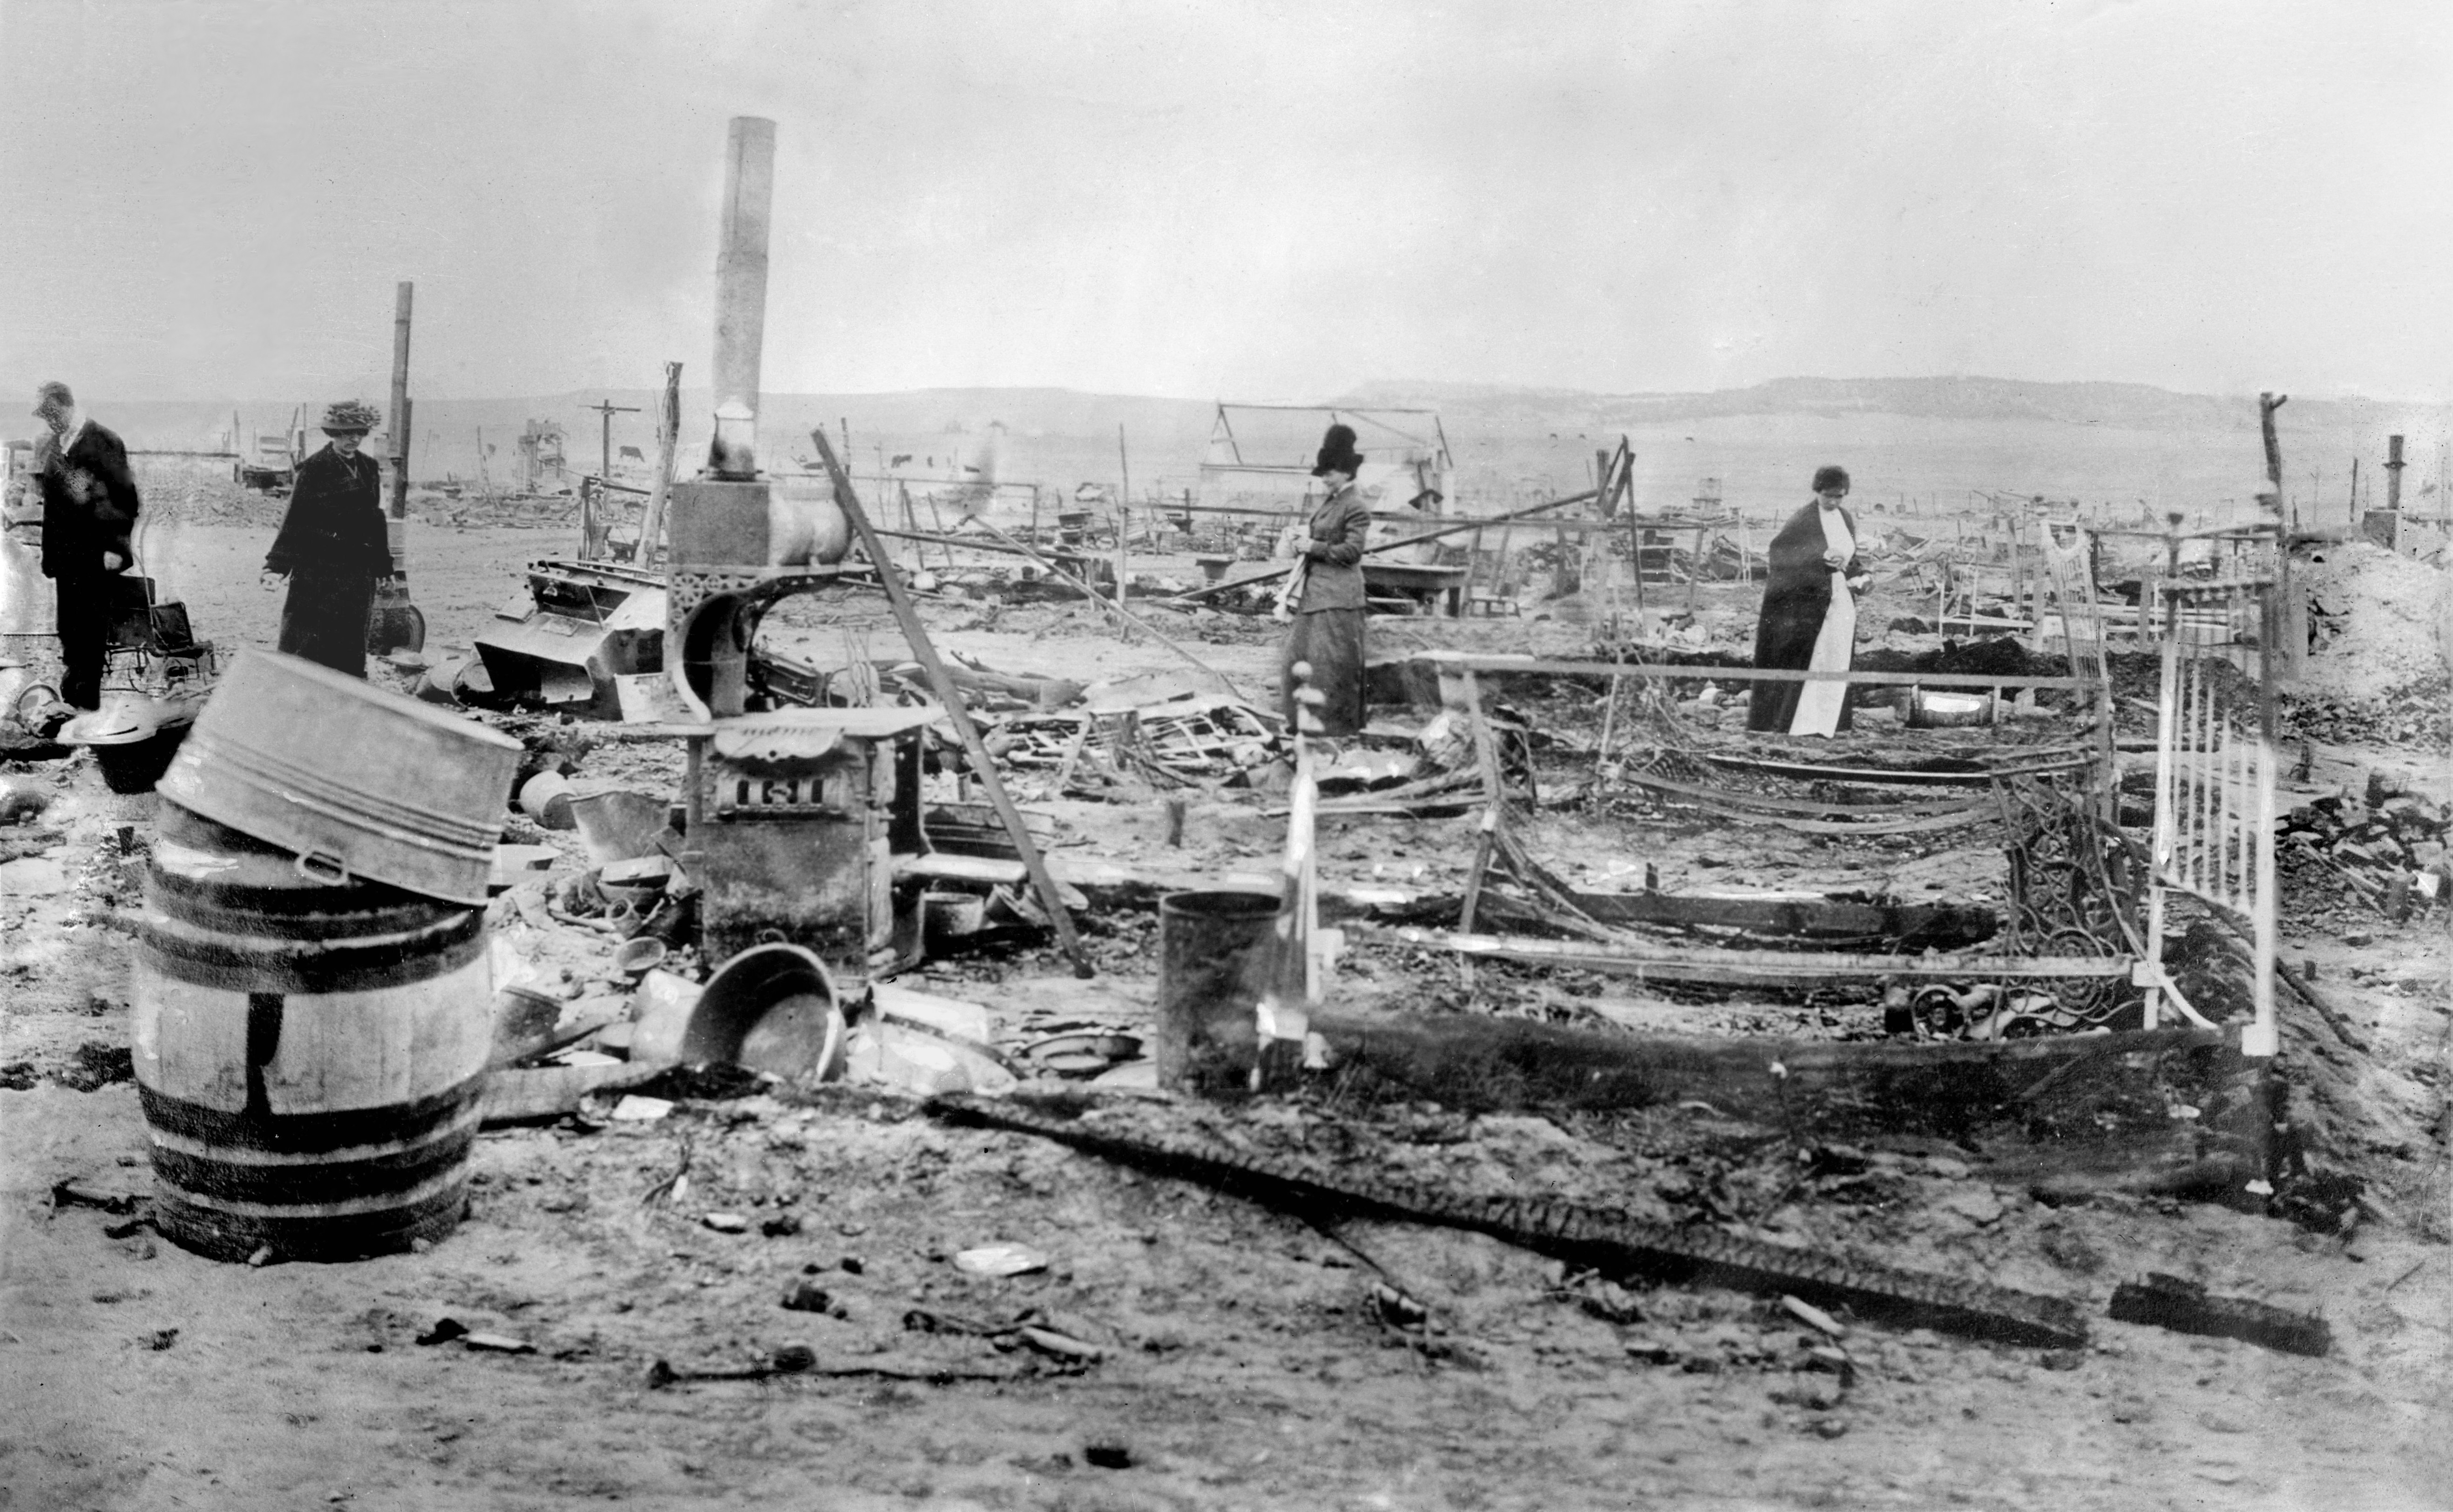 The aftermath of the Ludlow Massacre, when Colorado National Guardsmen attacked a camp of striking mine workers and their families, killing 19-25 people, including 2 women and 11 children; photo taken 21 April 1914